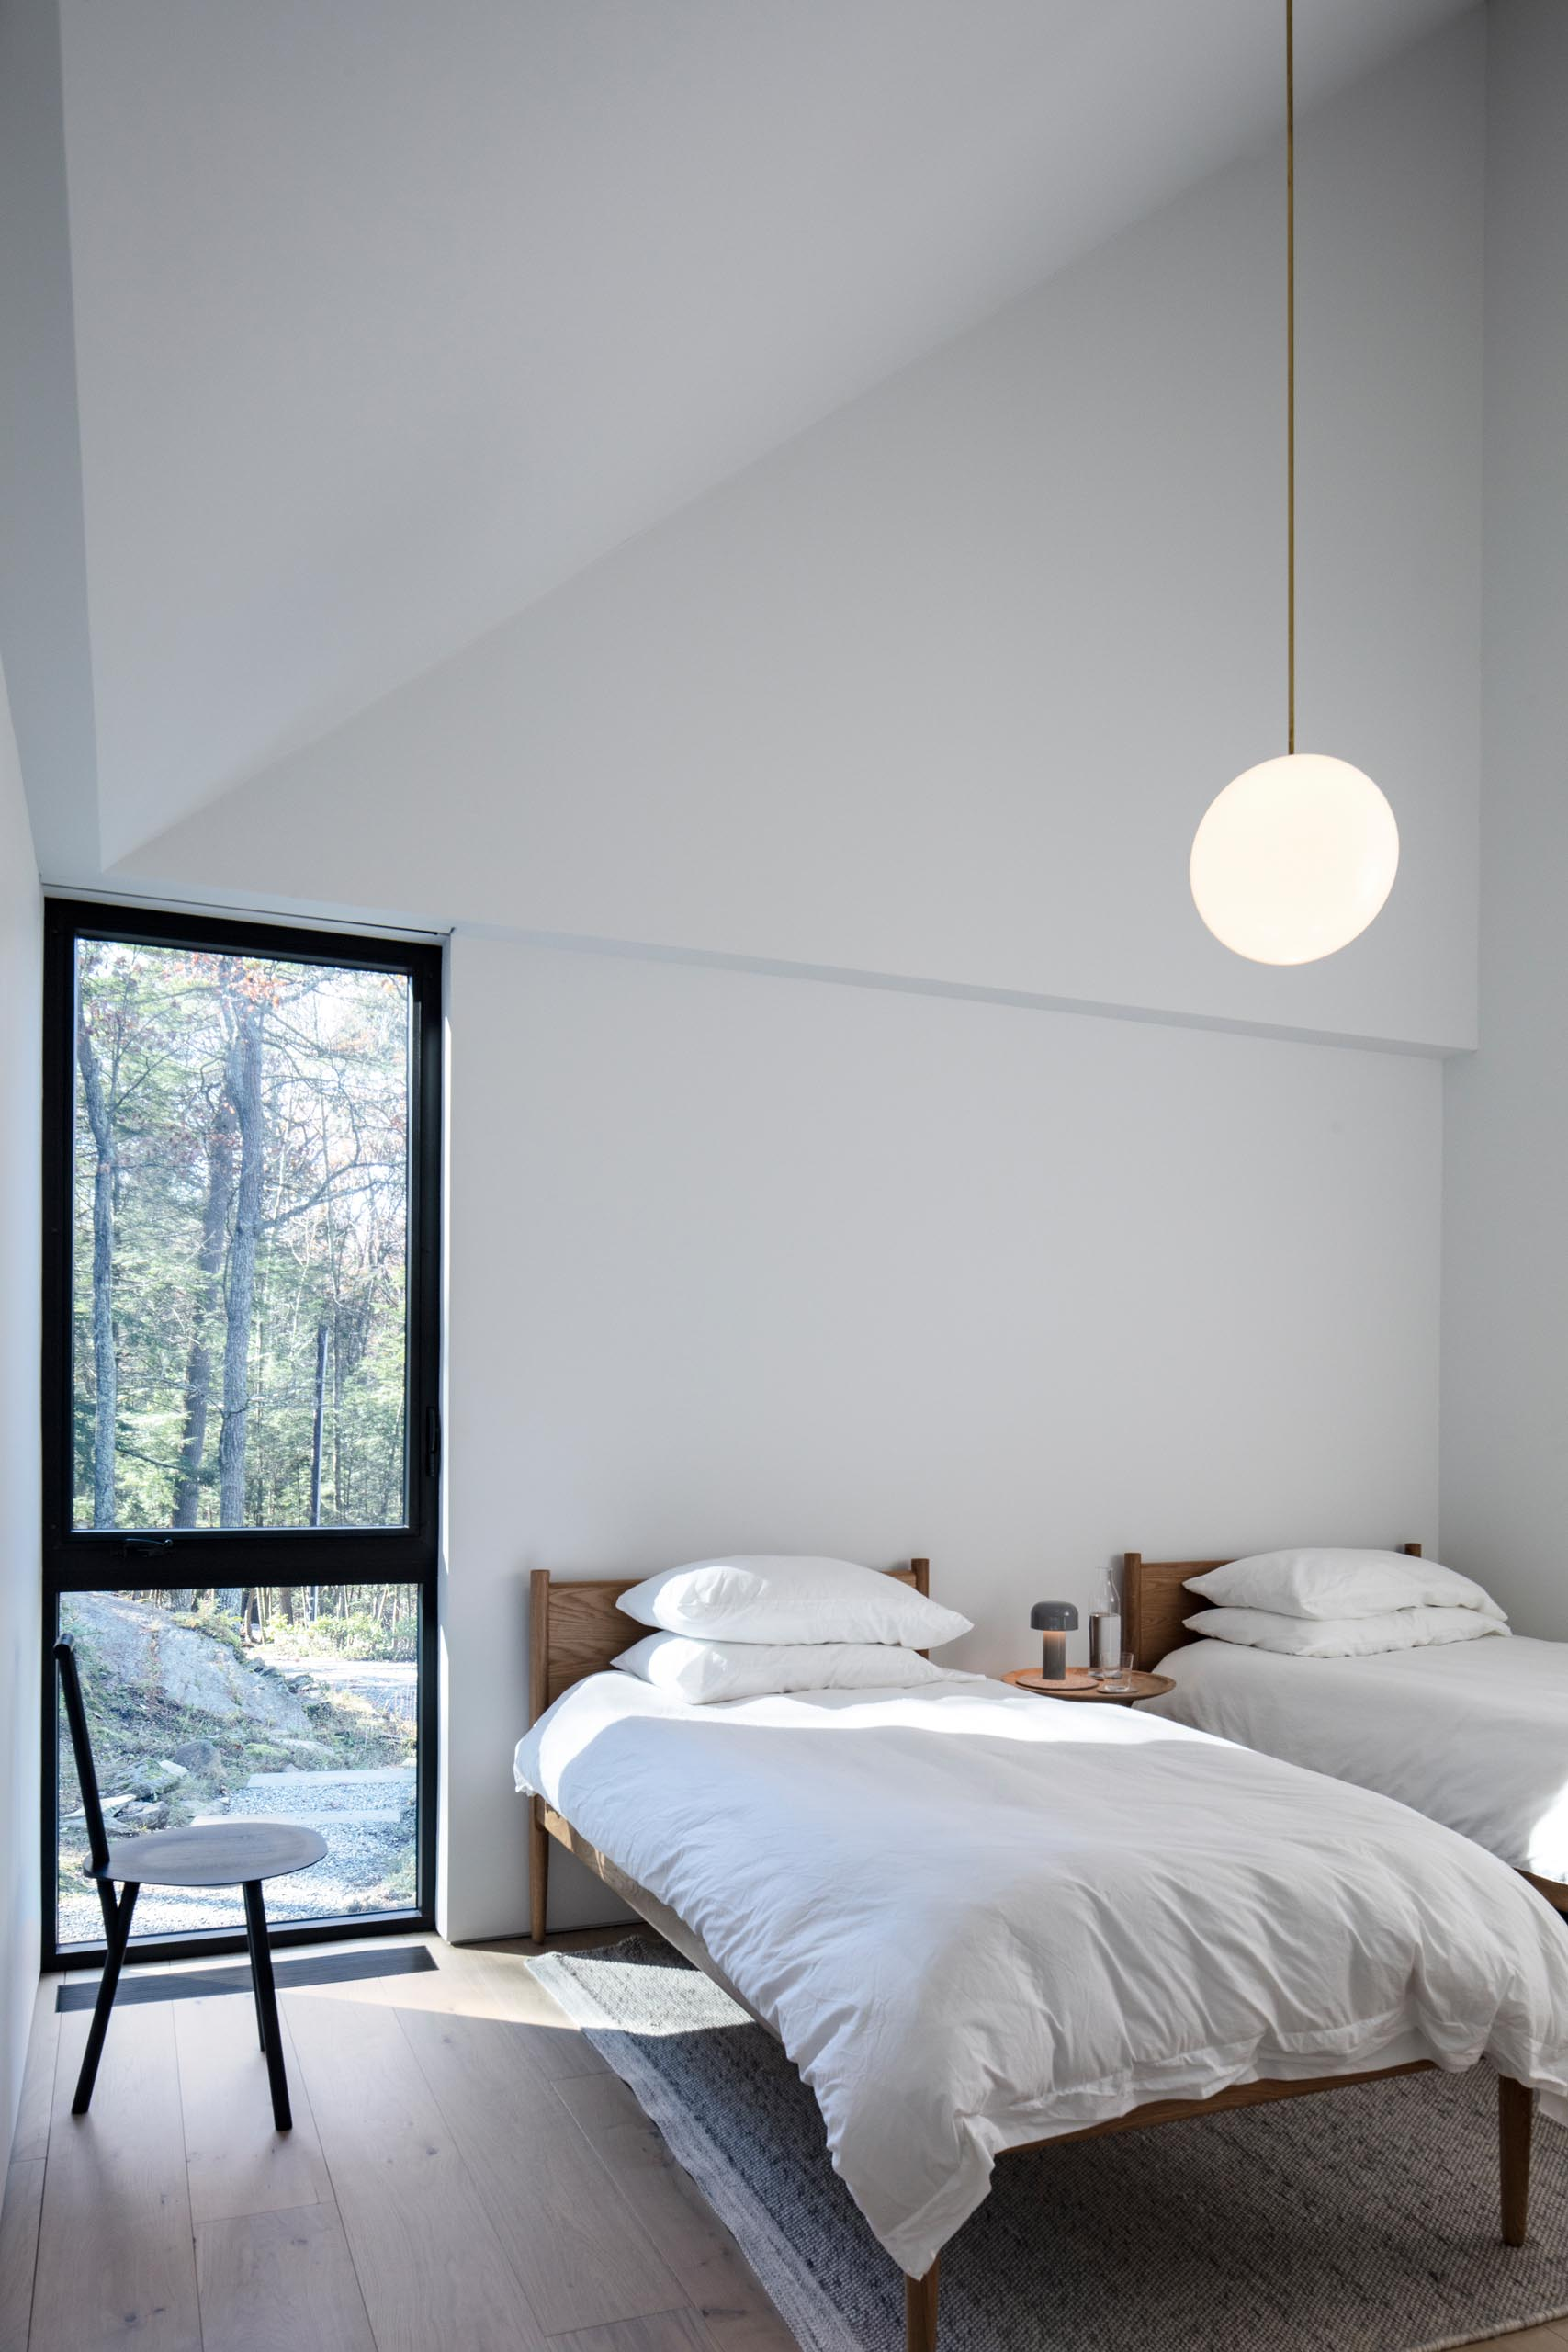 A minimalist guest bedroom with two beds, a modern black chair, white walls, and a single pendant light.